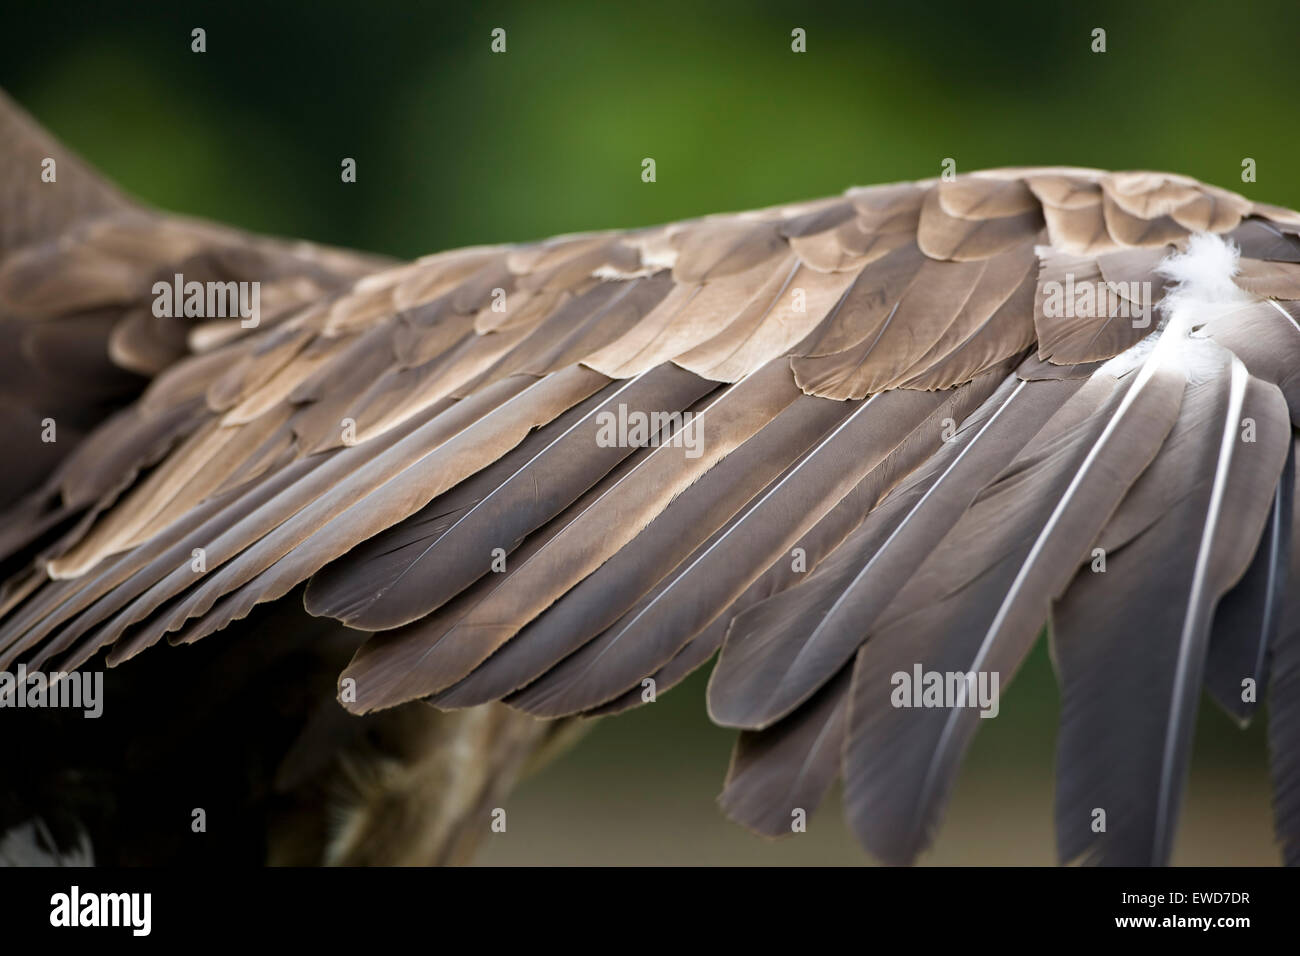 Wing feathers of a white tailed sea eagle Haliaeetus albicilla in close up on one extended wing - Stock Image